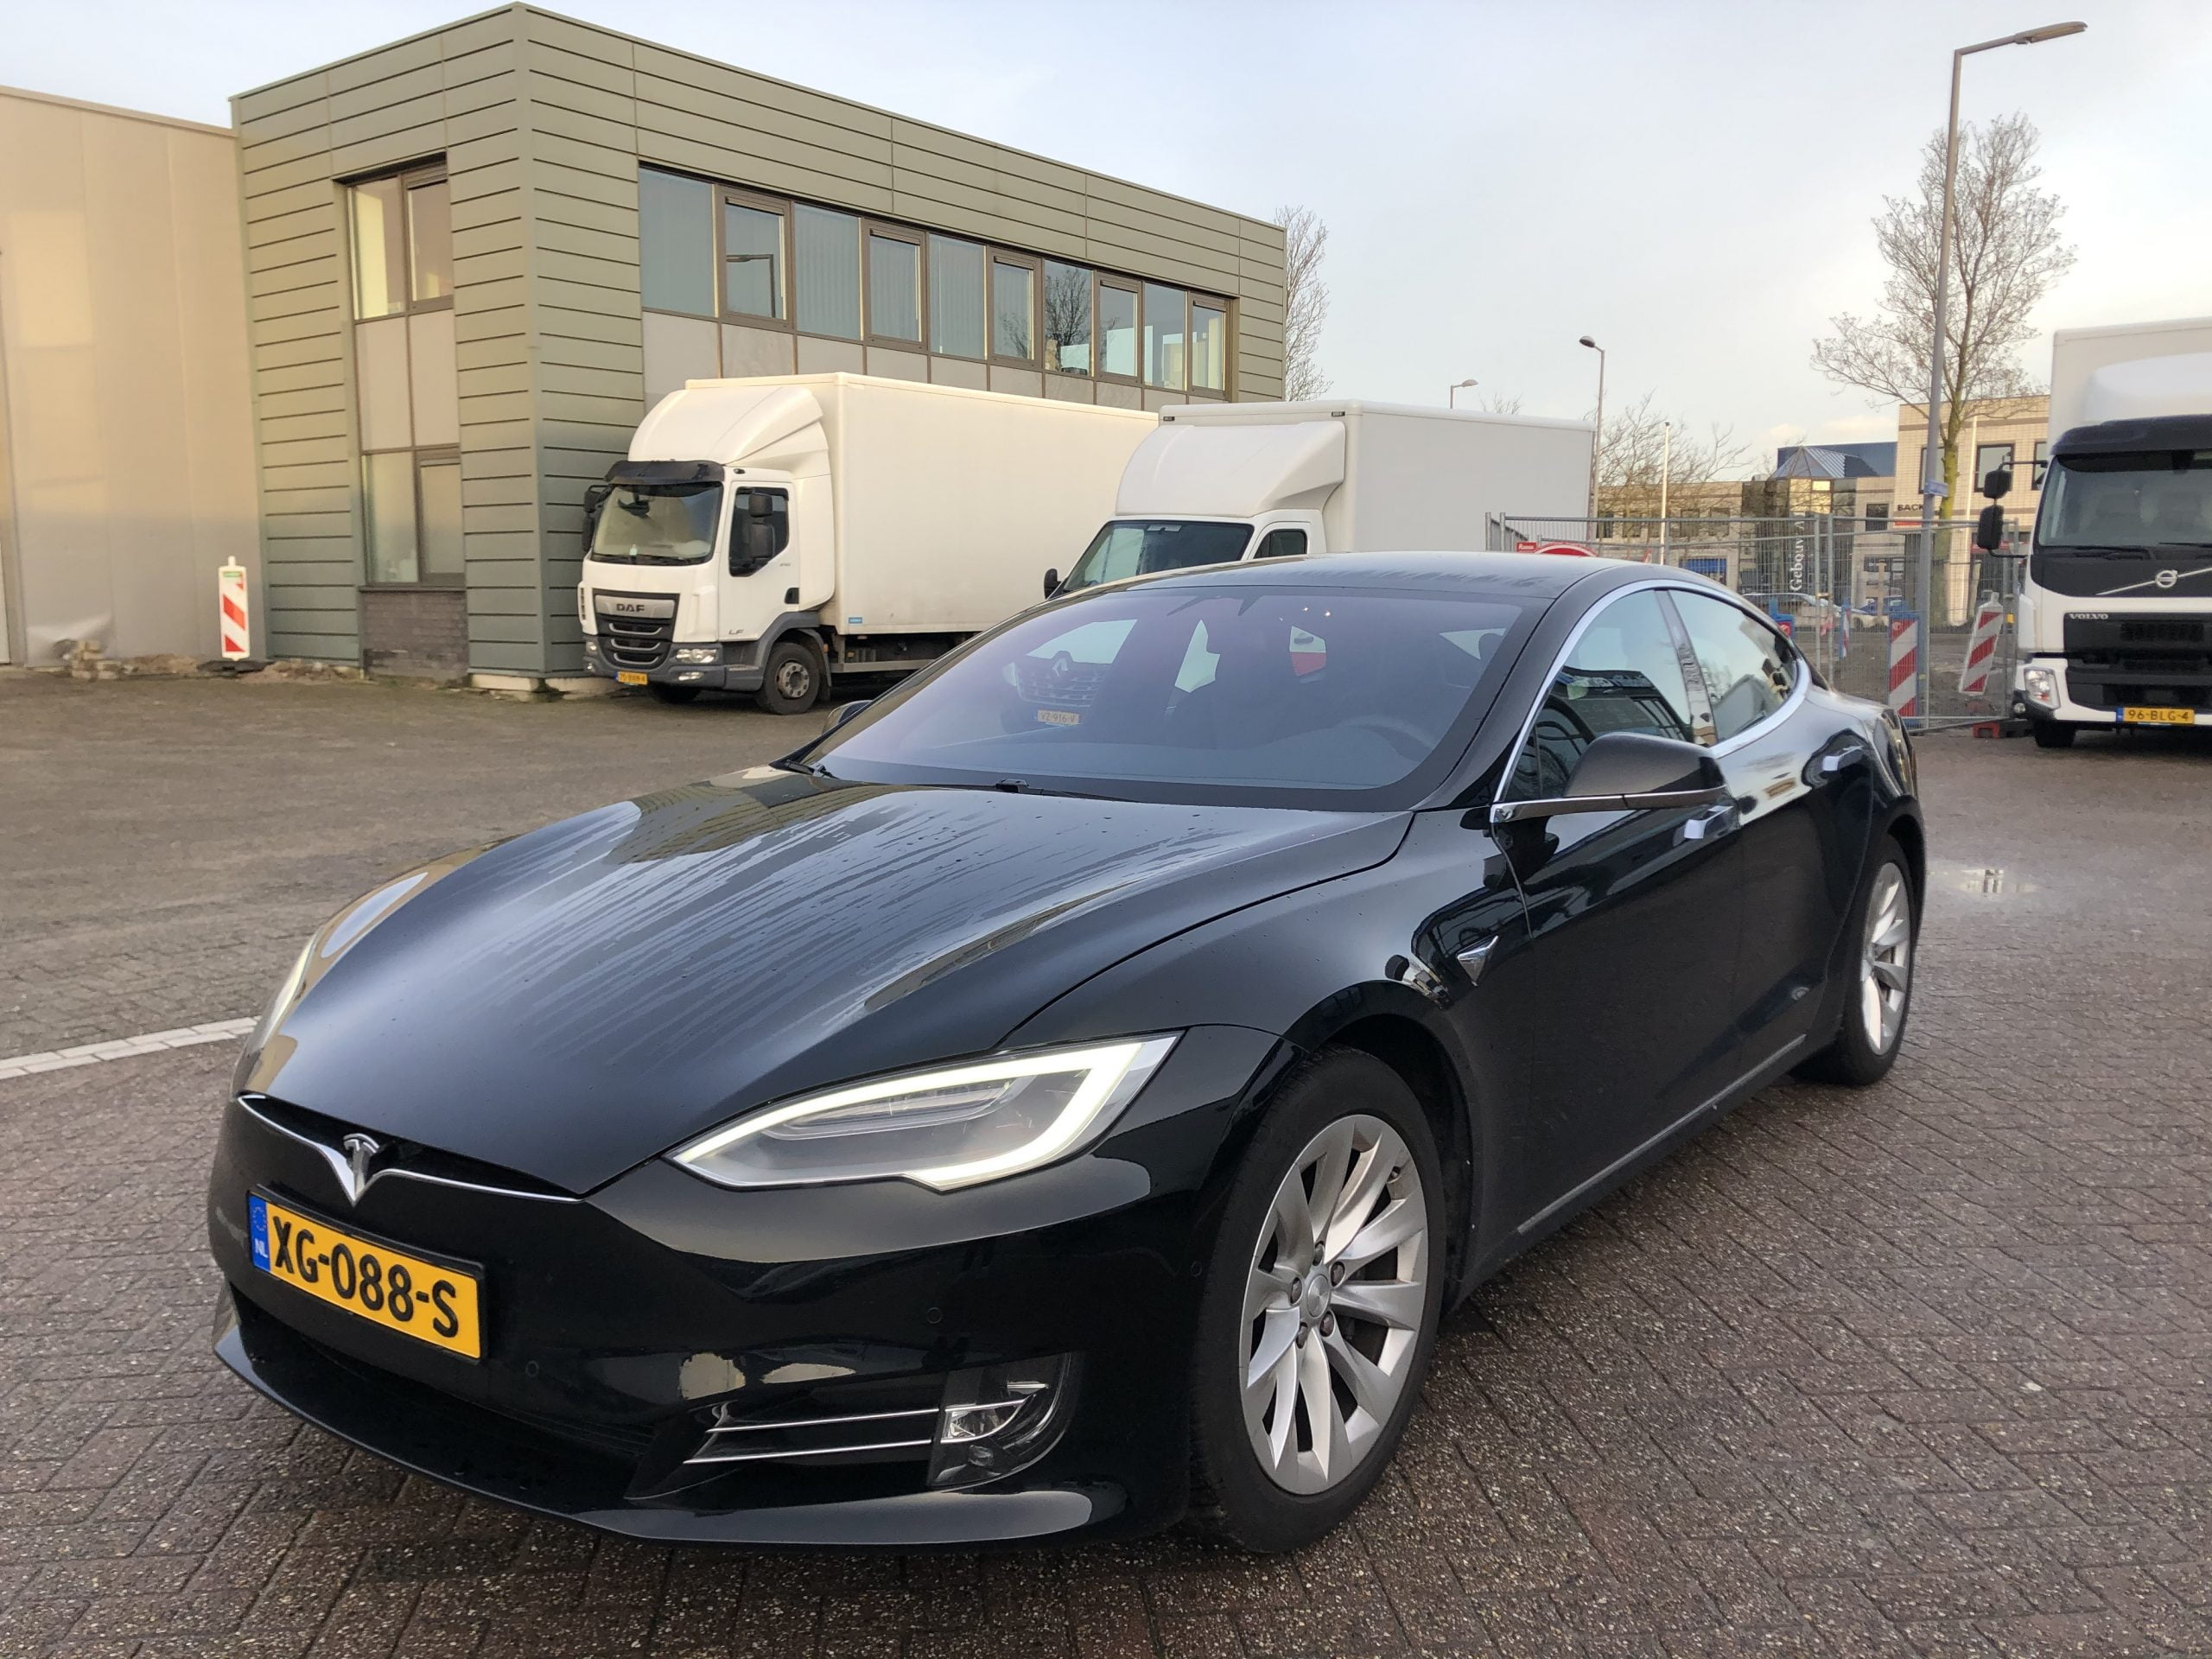 Tesla Model S 75 kWh AWD 5d. (Maximale periode volledig 4% bijtelling)